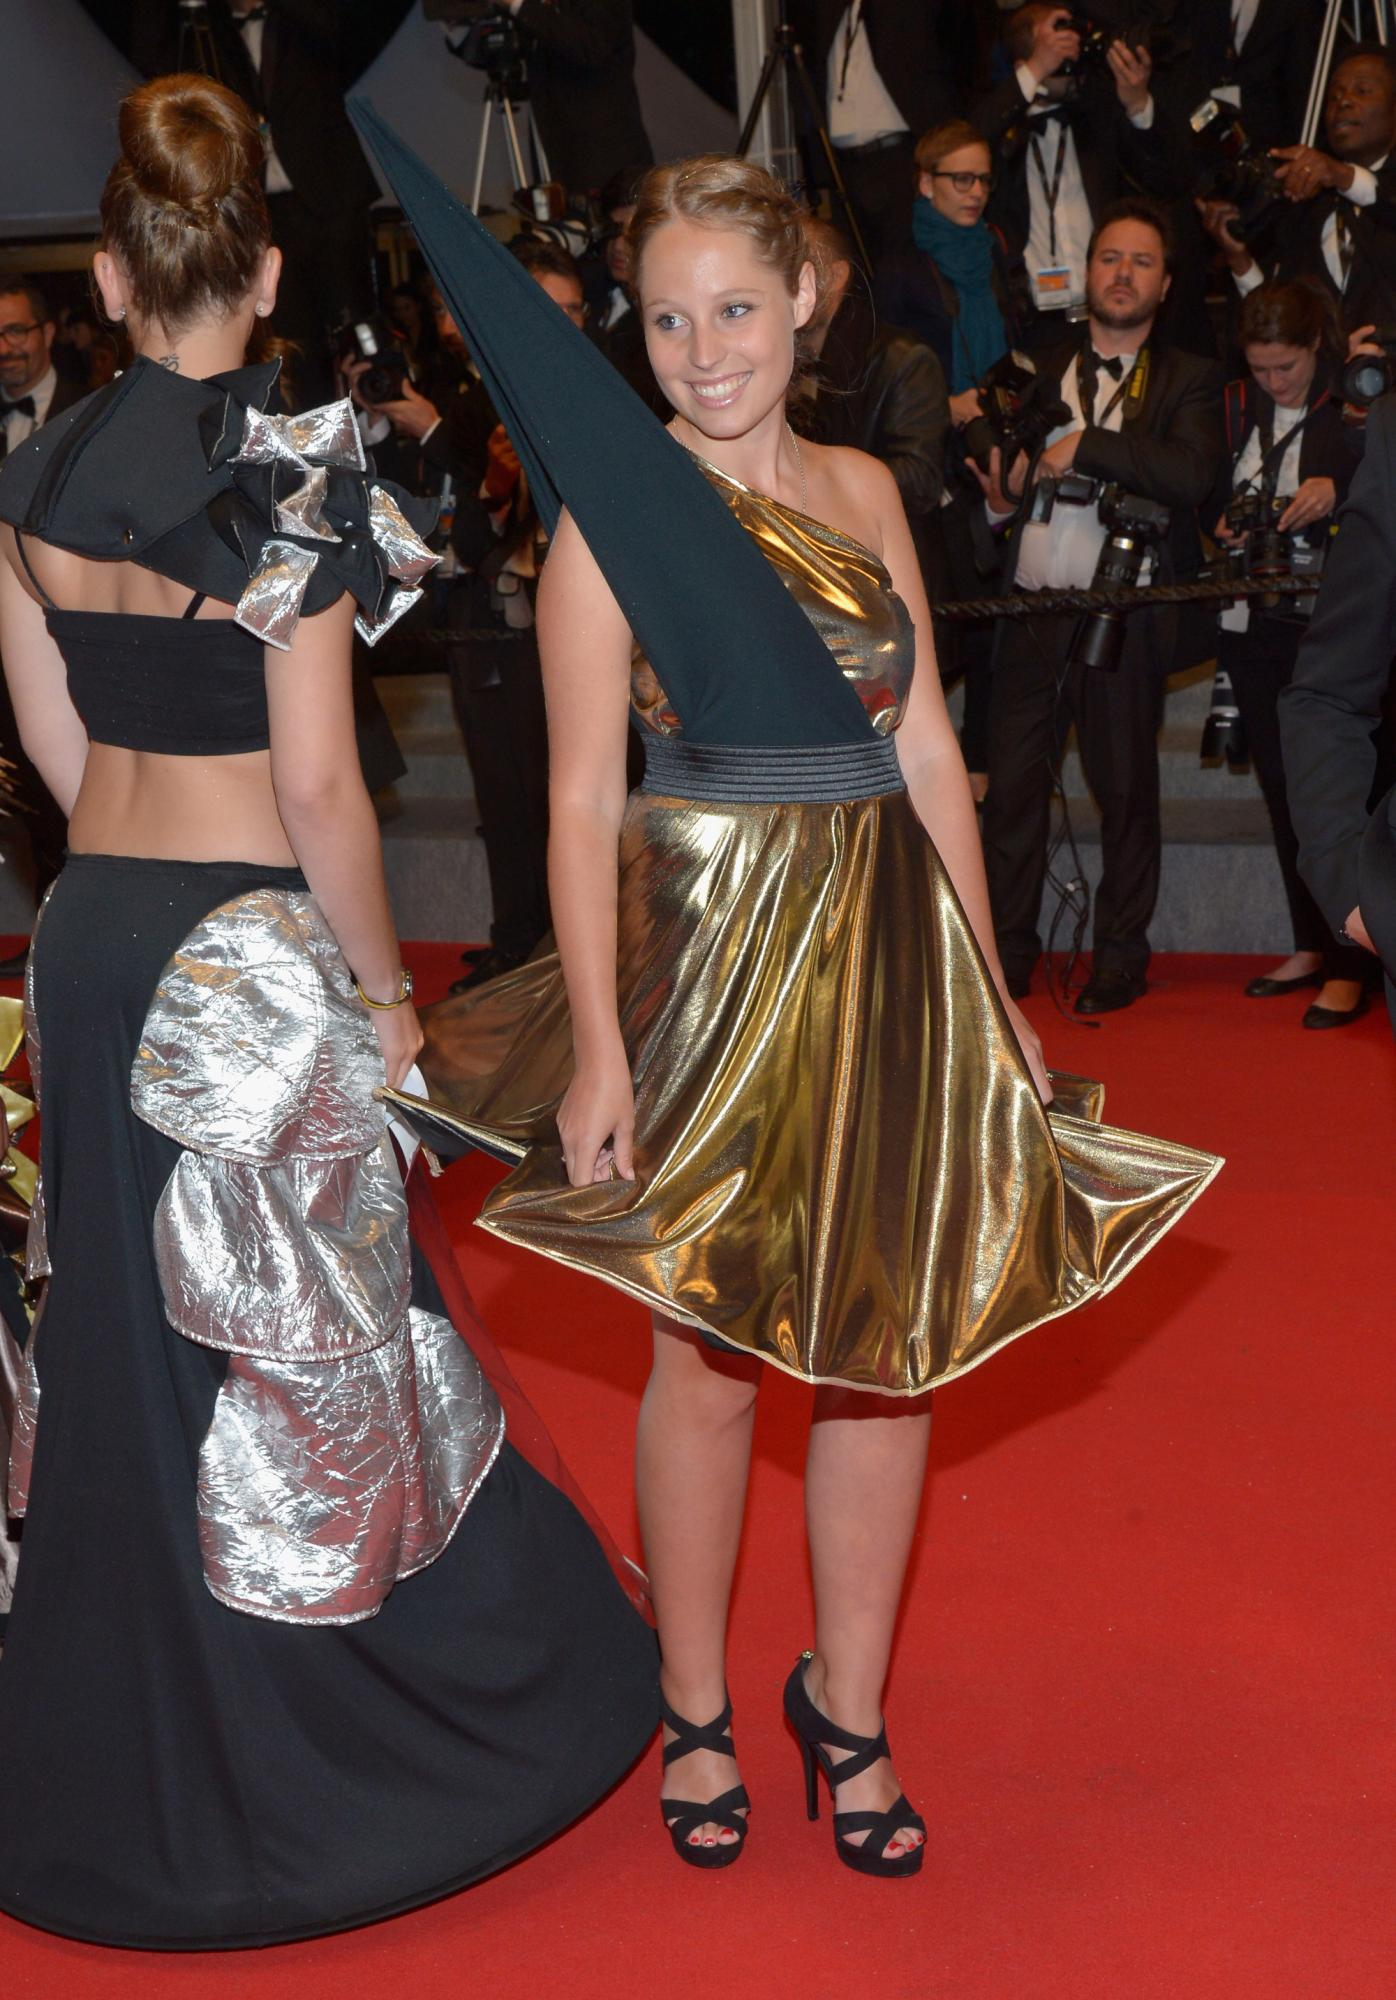 Quebec director Xavier Dolans Mommy wows at Cannes